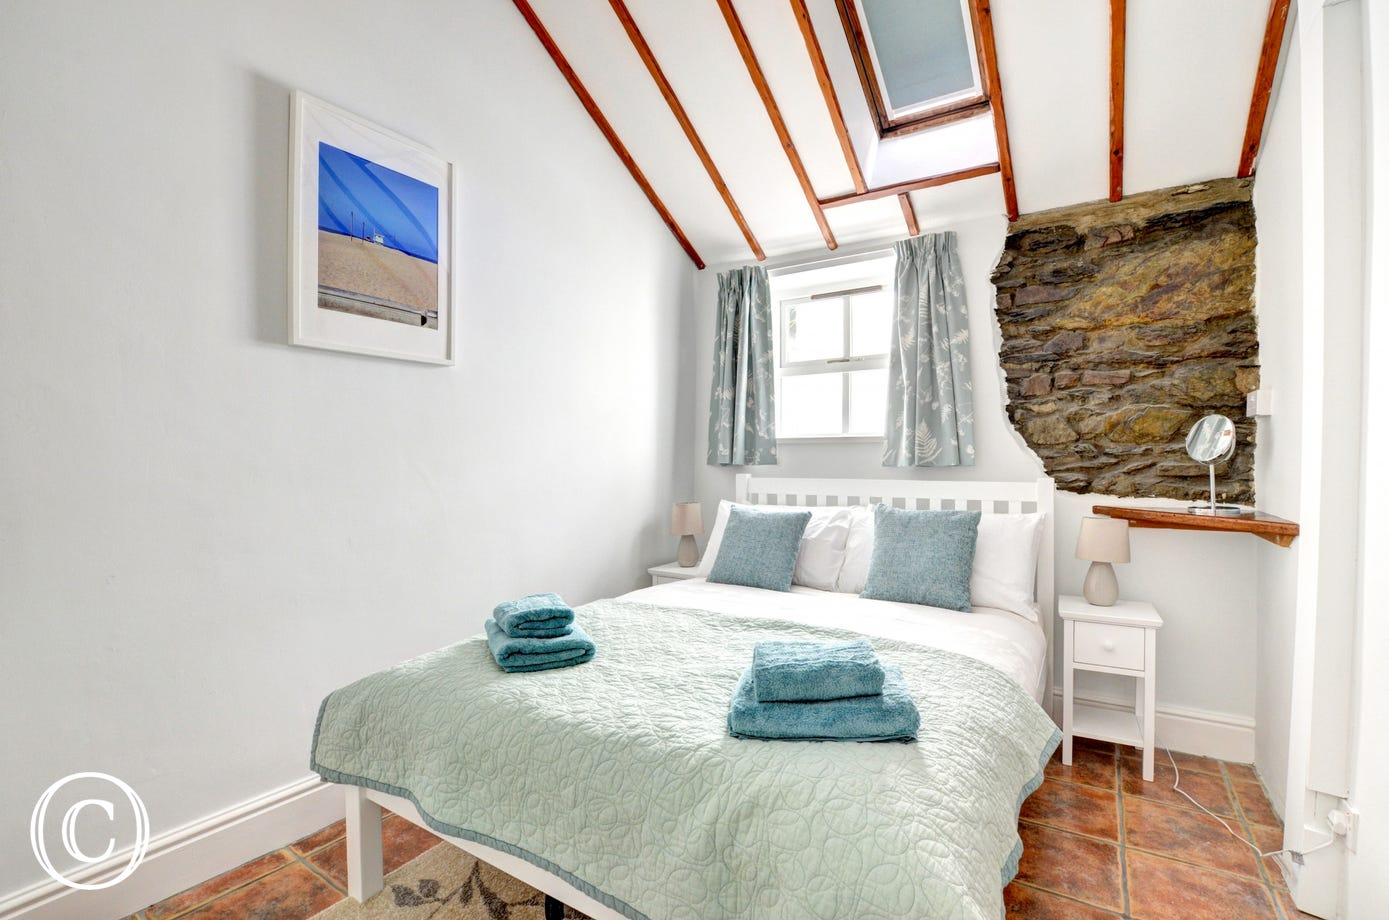 Tastefully decorated double bedroom with exposed stone wall